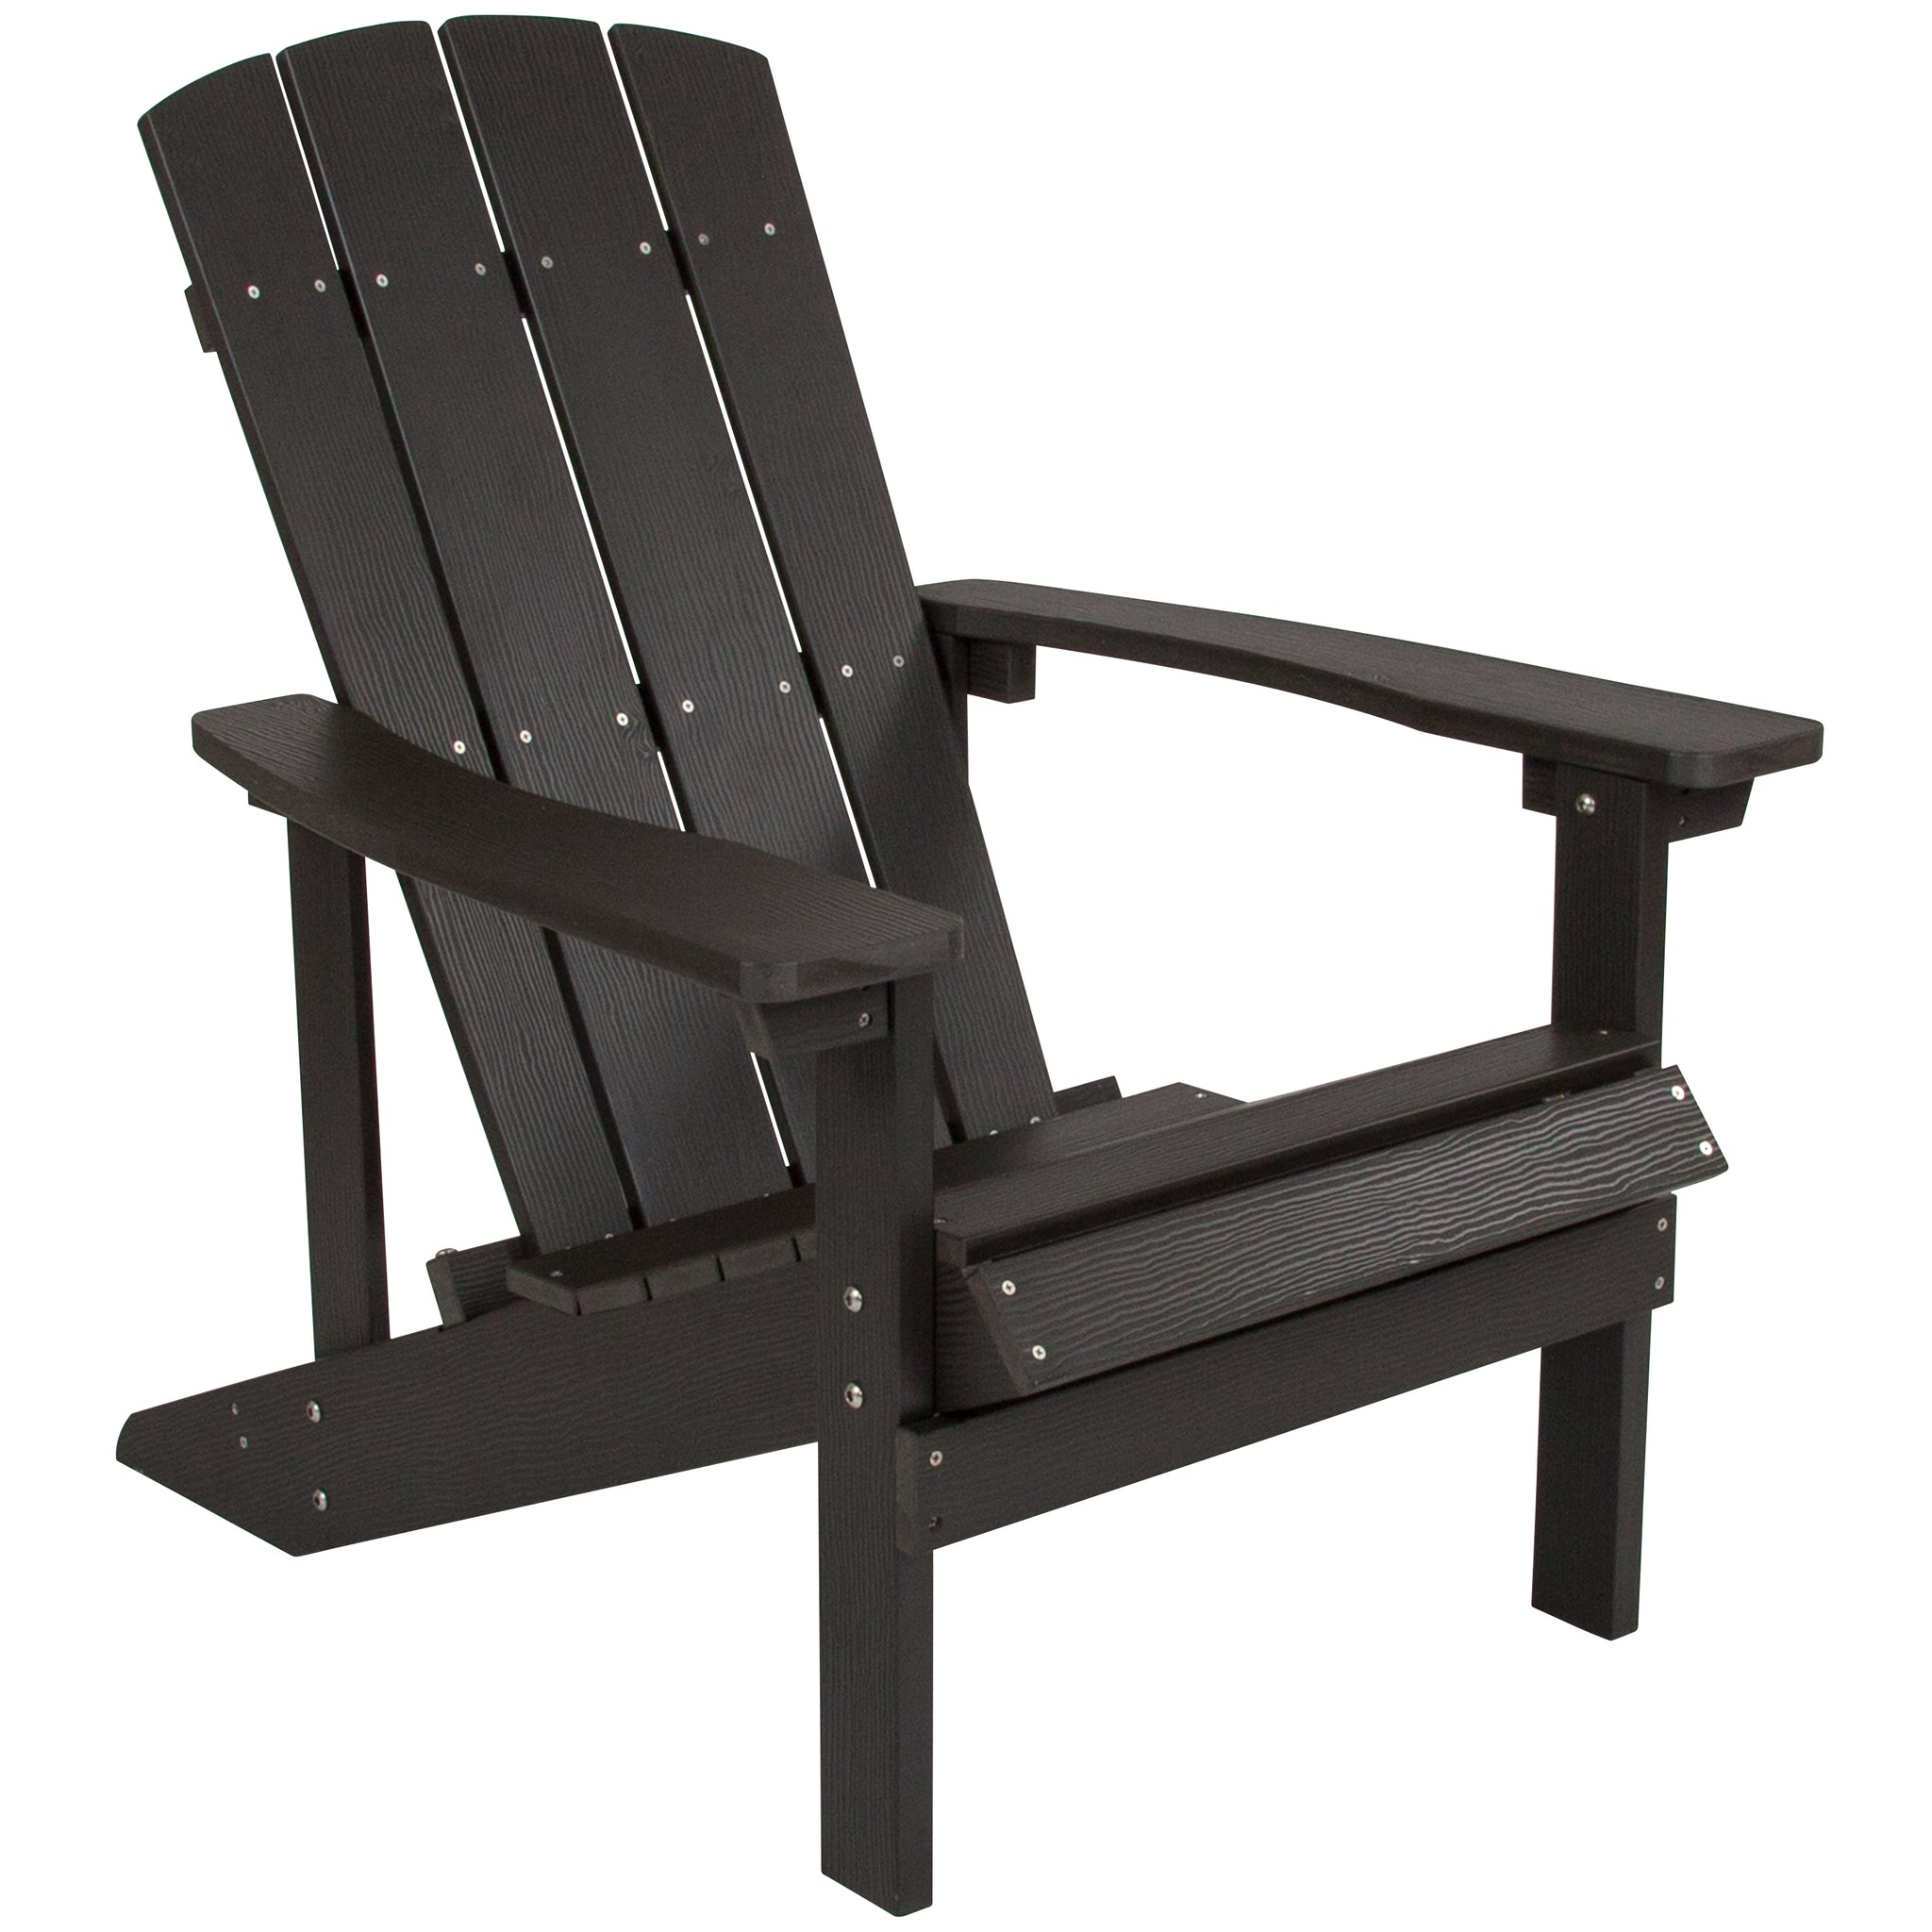 Charlestown All-Weather Adirondack Chair in Slate Gray Faux Wood